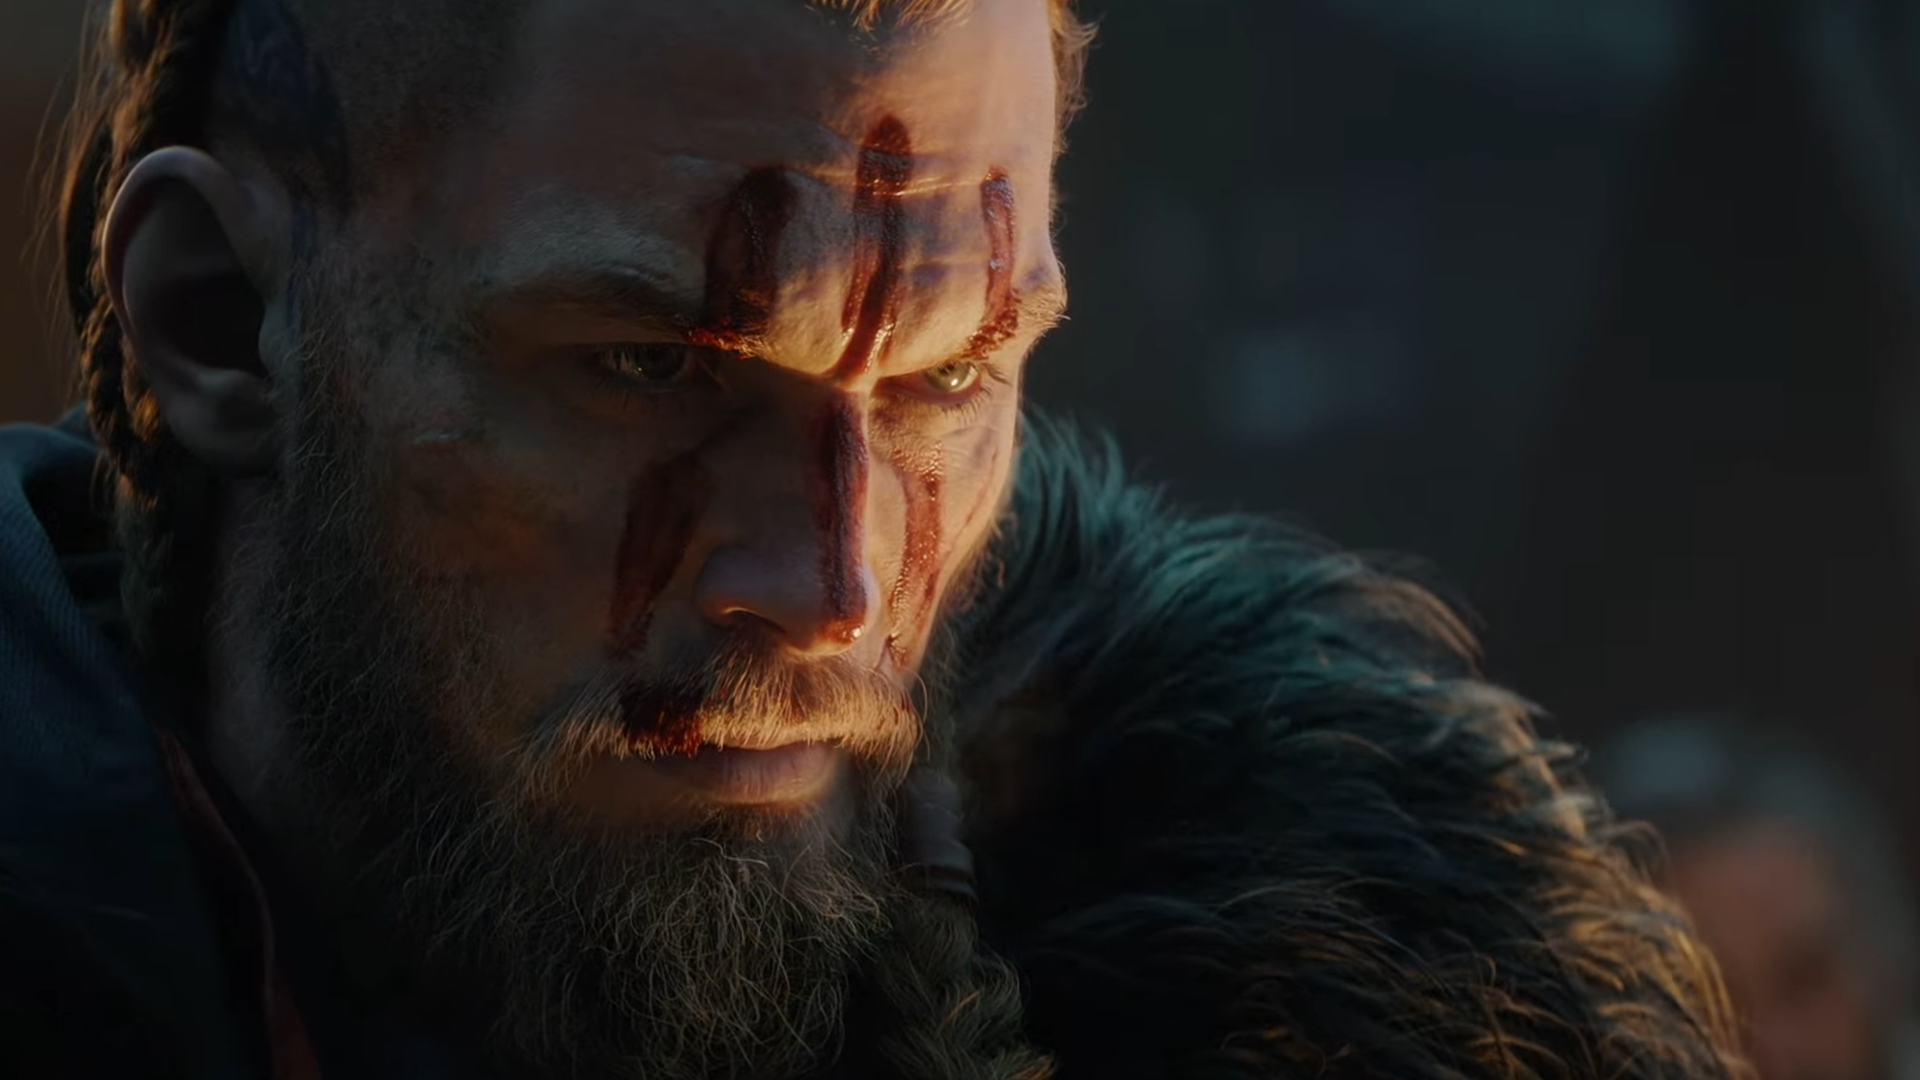 The Assassin S Creed Valhalla Cinematic Debut Trailer Is Very